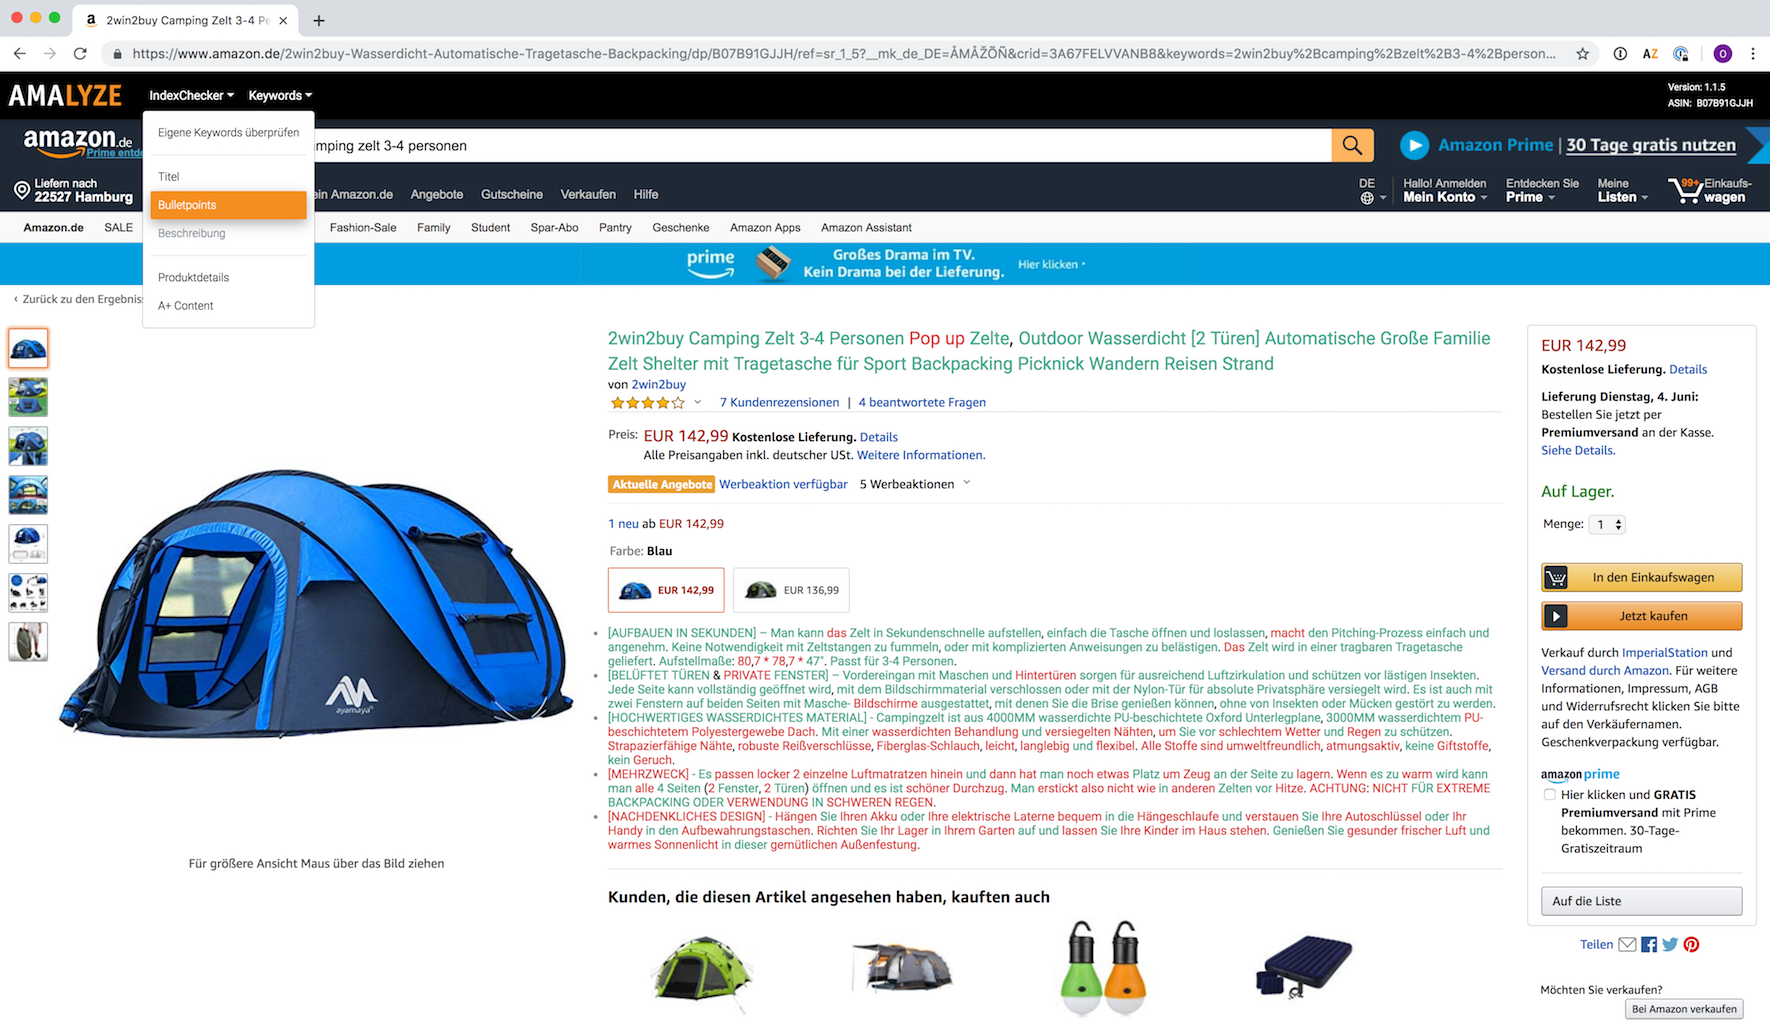 AMALYZE Chrome Extension_Amazon Index Checker Funktionen und Anleitung